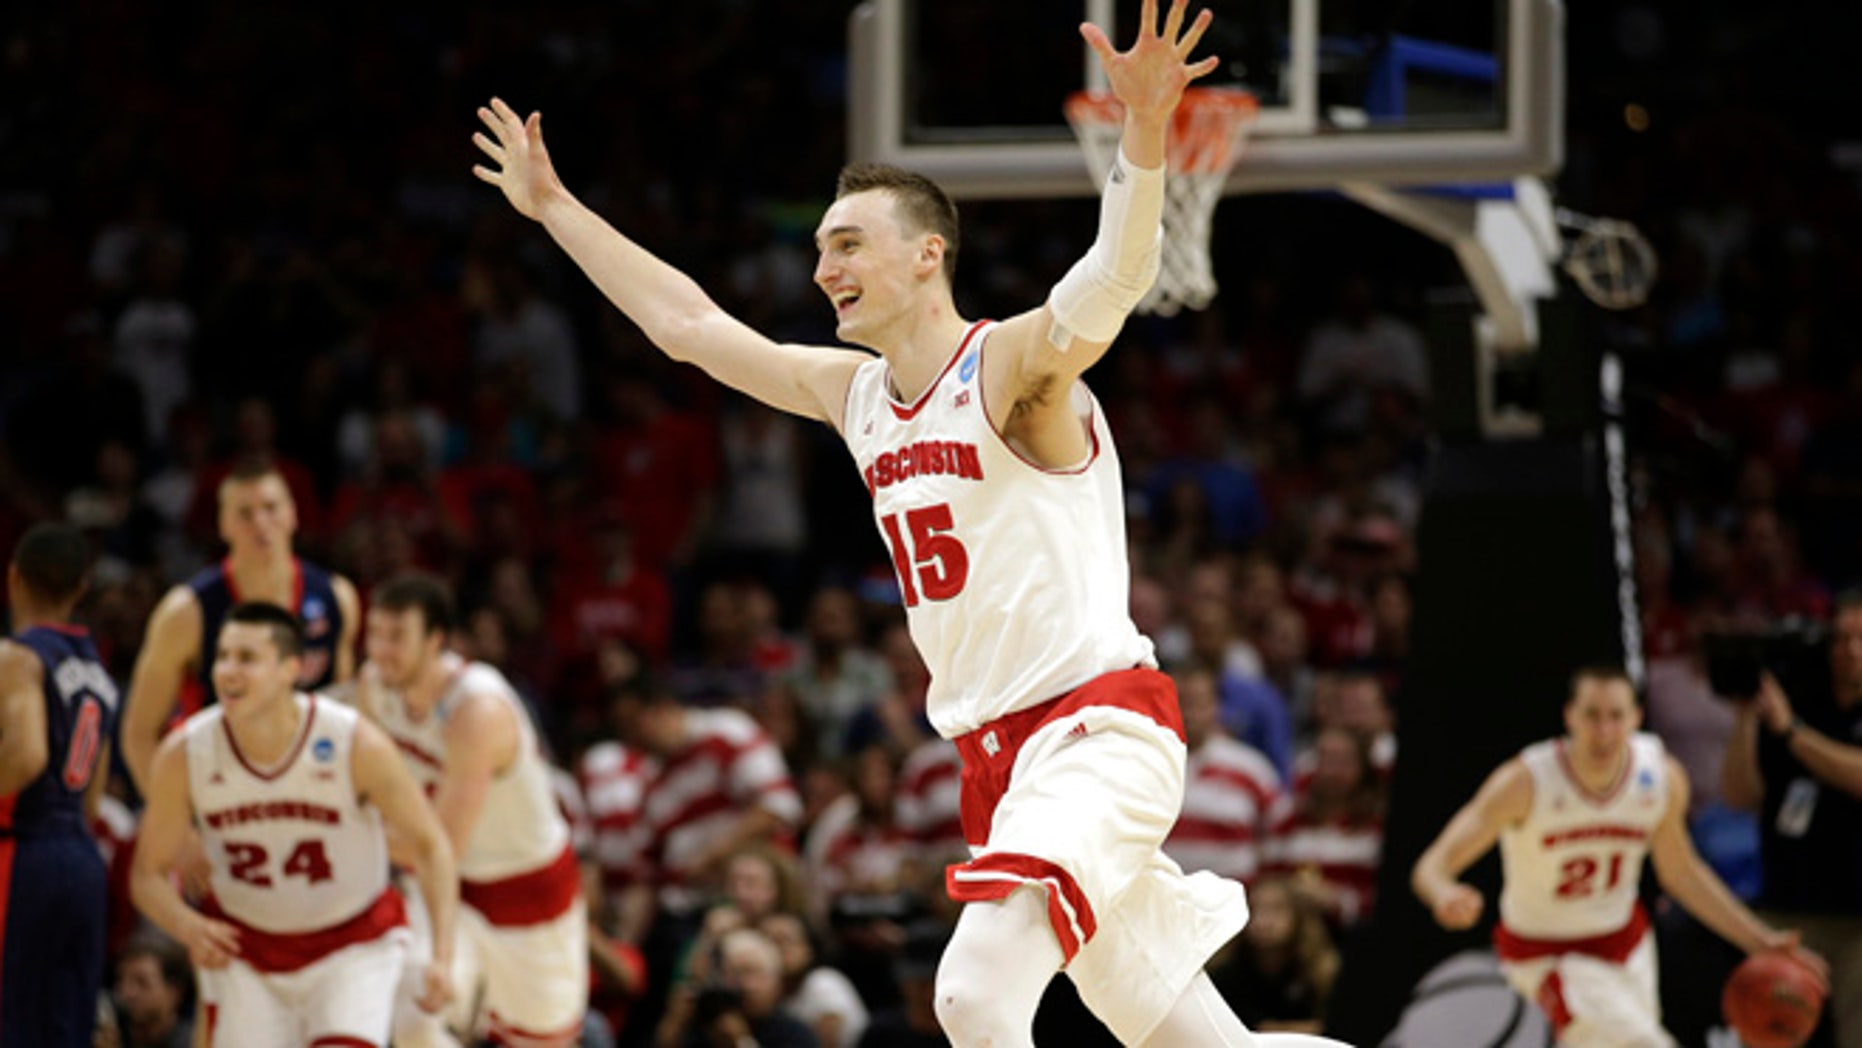 Mar. 28, 2015: Wisconsin forward Sam Dekker (15) celebrates after Wisconsin beat Arizona 85-78 in a college basketball regional final in the NCAA Tournament in Los Angeles. (AP)